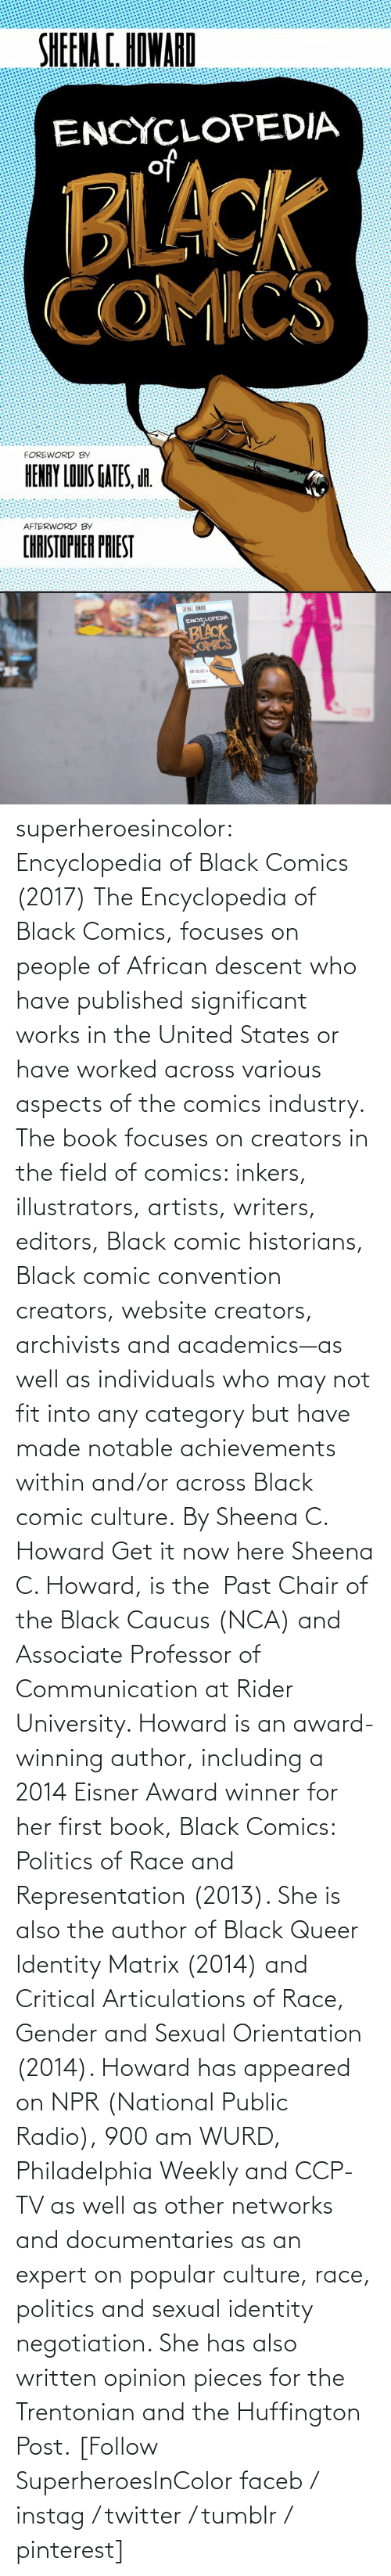 Artists: superheroesincolor: Encyclopedia of Black Comics (2017) The Encyclopedia of Black Comics, focuses on people of African descent who have published significant works in the United States or have worked across various aspects of the comics industry.  The book focuses on creators in the field of comics: inkers, illustrators, artists, writers, editors, Black comic historians, Black comic convention creators, website creators, archivists and academics—as well as individuals who may not fit into any category but have made notable achievements within and/or across Black comic culture. By Sheena C. Howard Get it now here  Sheena C. Howard, is the  Past Chair of the Black Caucus (NCA) and Associate Professor of Communication at Rider University. Howard is an award-winning author, including a 2014 Eisner Award winner for her first book, Black Comics: Politics of Race and Representation (2013). She is also the author of Black Queer Identity Matrix (2014) and Critical Articulations of Race, Gender and Sexual Orientation (2014). Howard has appeared on NPR (National Public Radio), 900 am WURD, Philadelphia Weekly and CCP-TV as well as other networks and documentaries as an expert on popular culture, race, politics and sexual identity negotiation. She has also written opinion pieces for the Trentonian and the Huffington Post.   [Follow SuperheroesInColor faceb / instag / twitter / tumblr / pinterest]